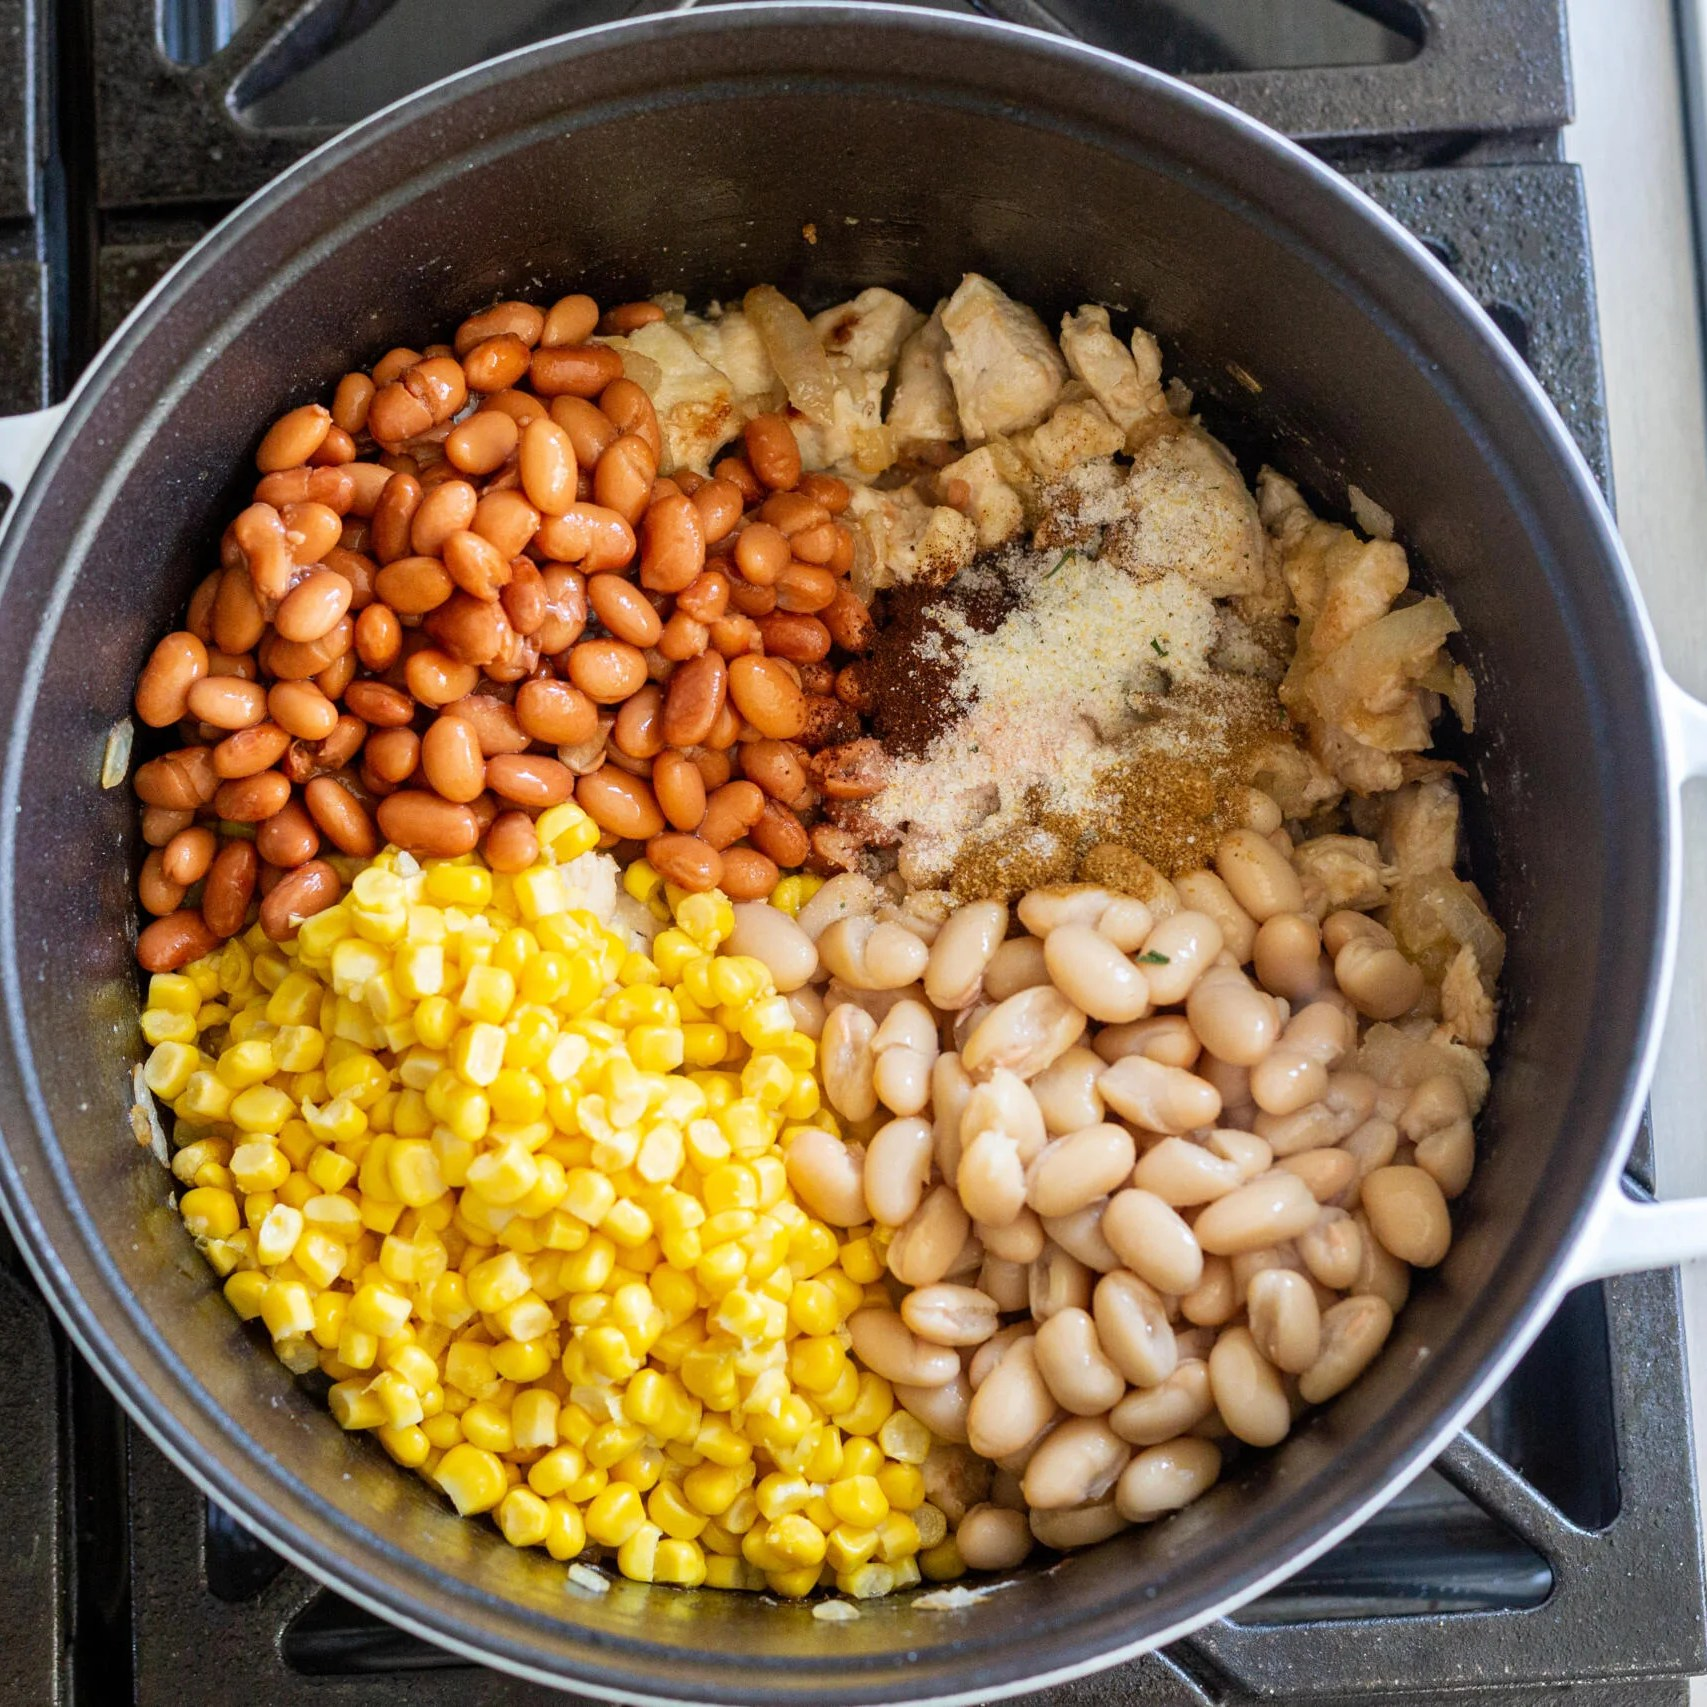 Beans and corn added to the pot with seasoning